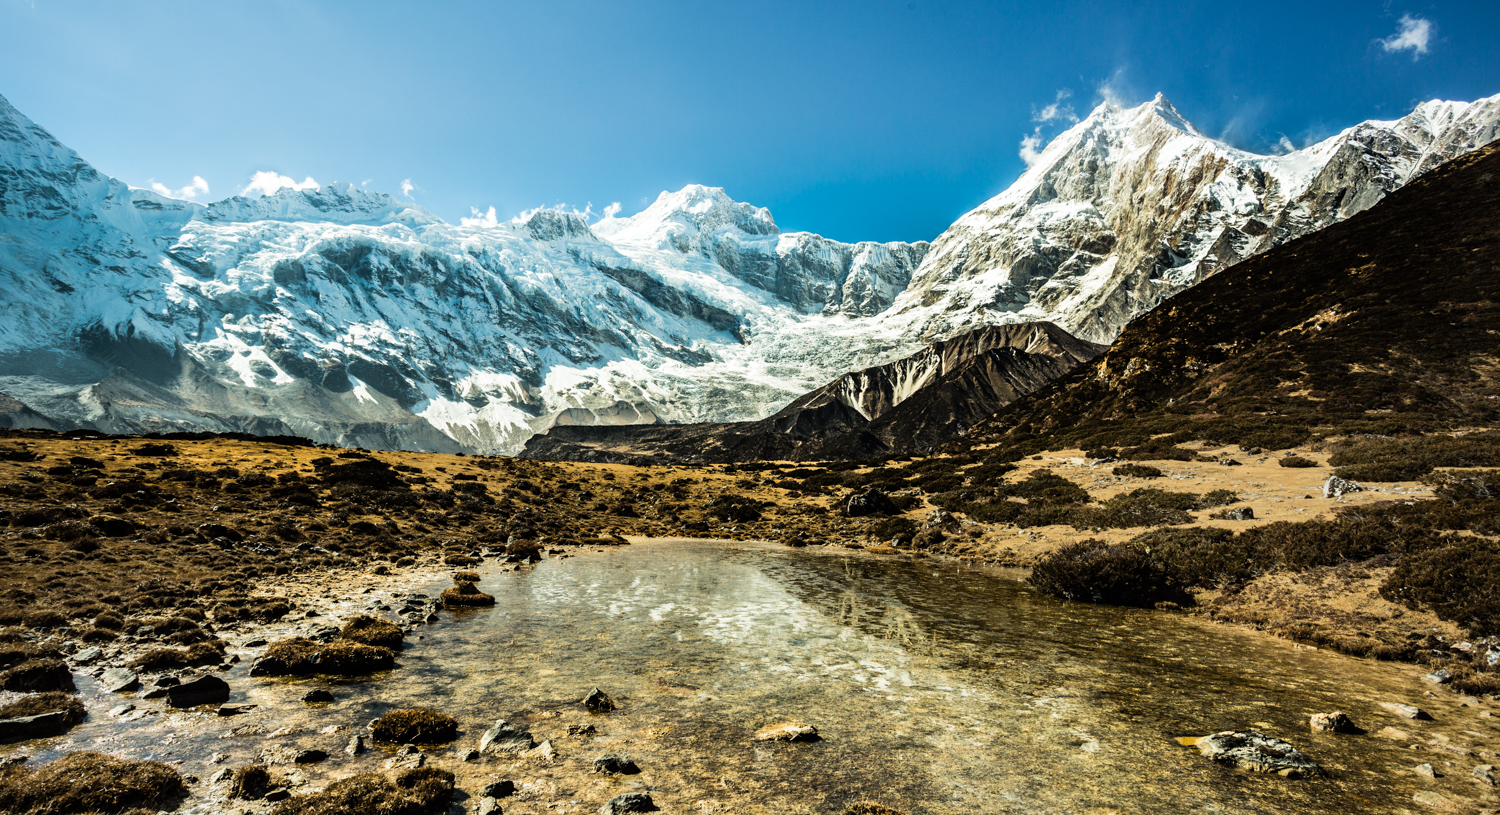 A section of the Manaslu massif. Manaslu is on the far, easily recognizable by its doubled-edged peaks.